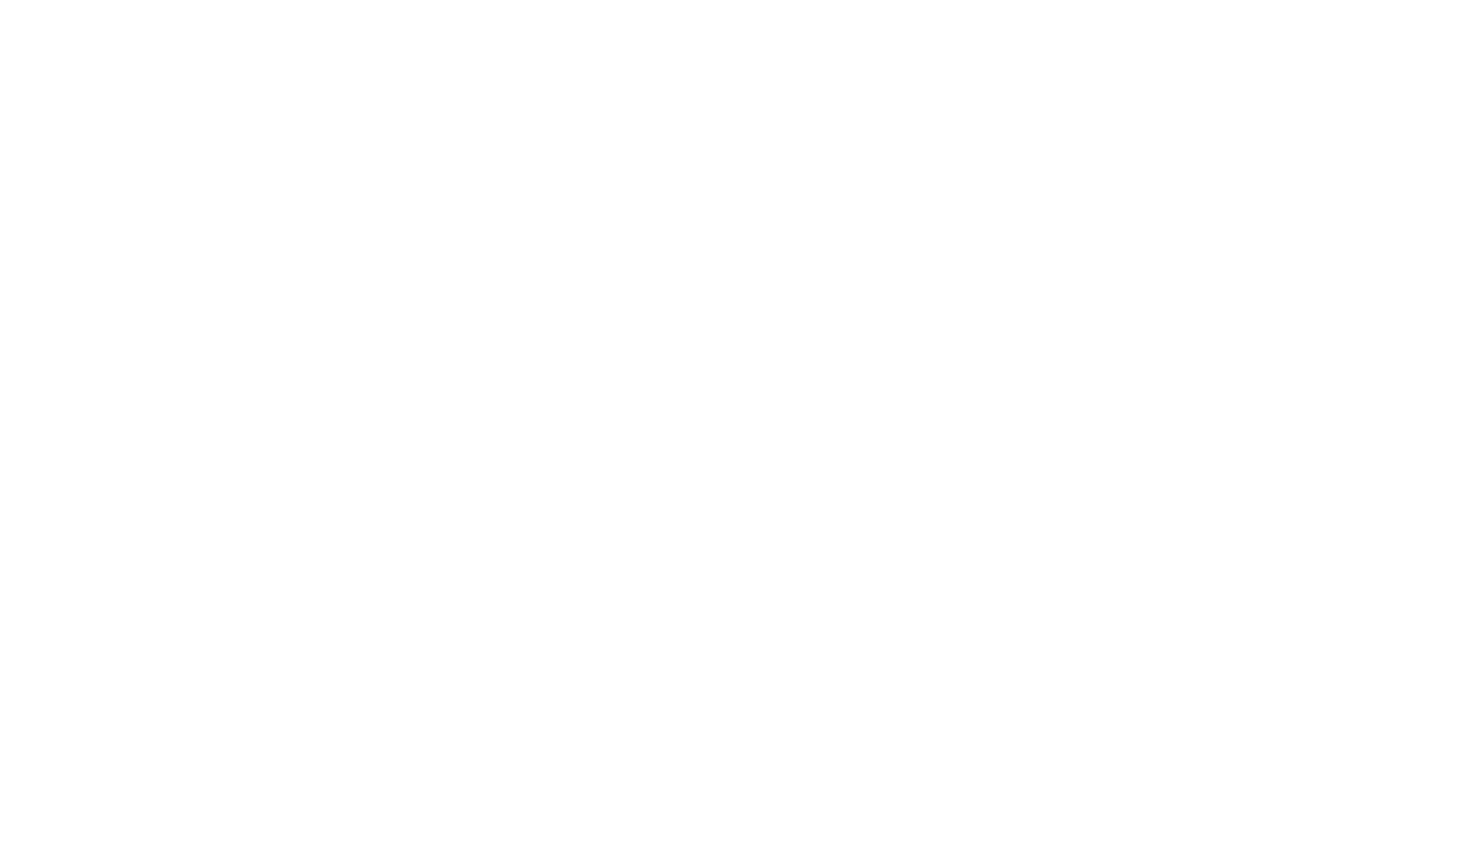 City Estate Gardener, Providence RI | Landscaping & Lawn Care Services for Residential & Commercial Properties